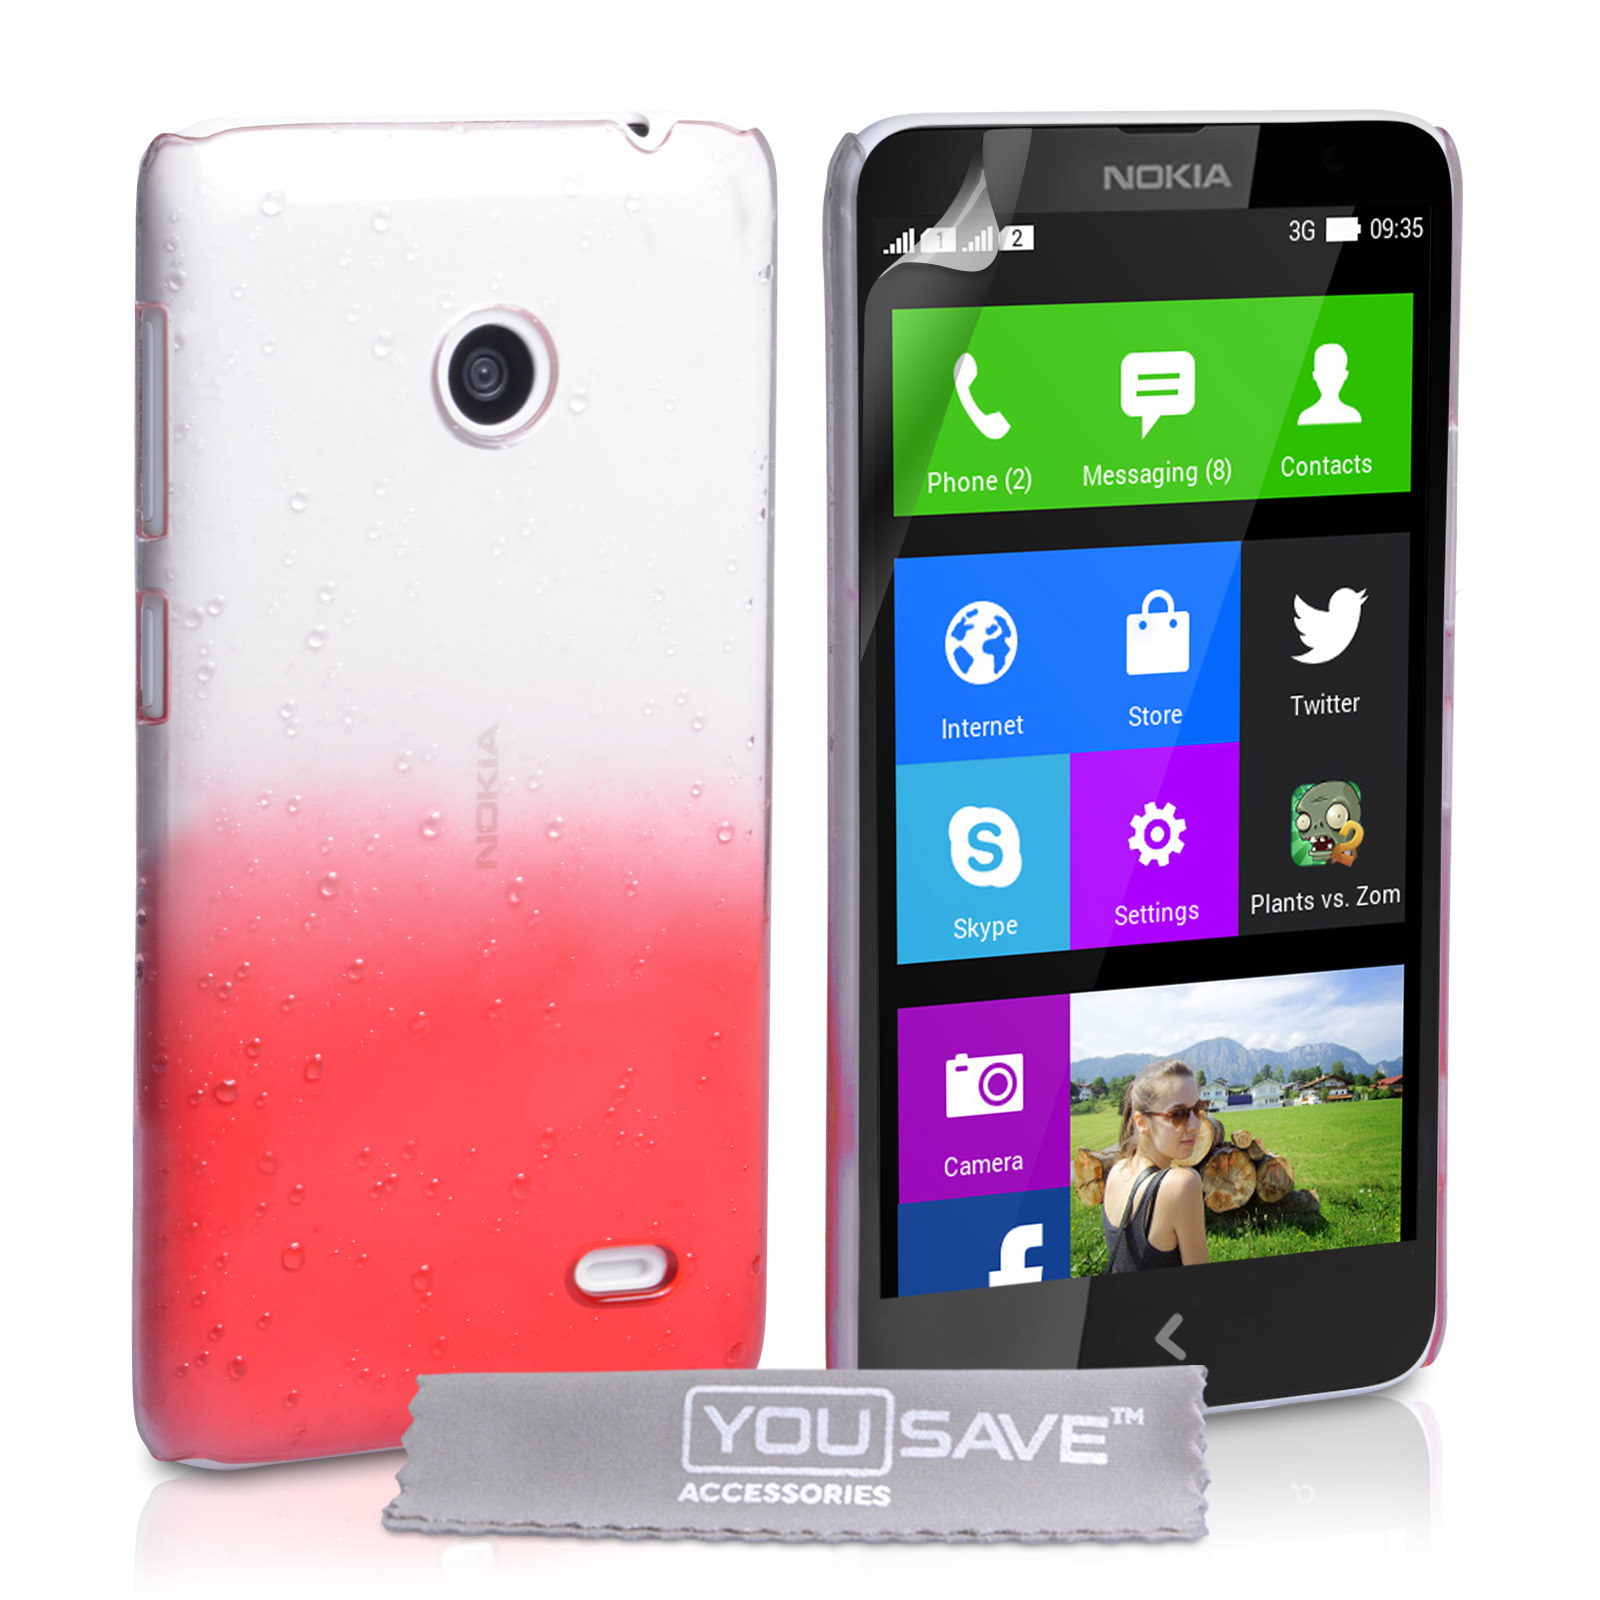 YouSave Accessories Nokia X Raindrop Hard Case - Red-Clear